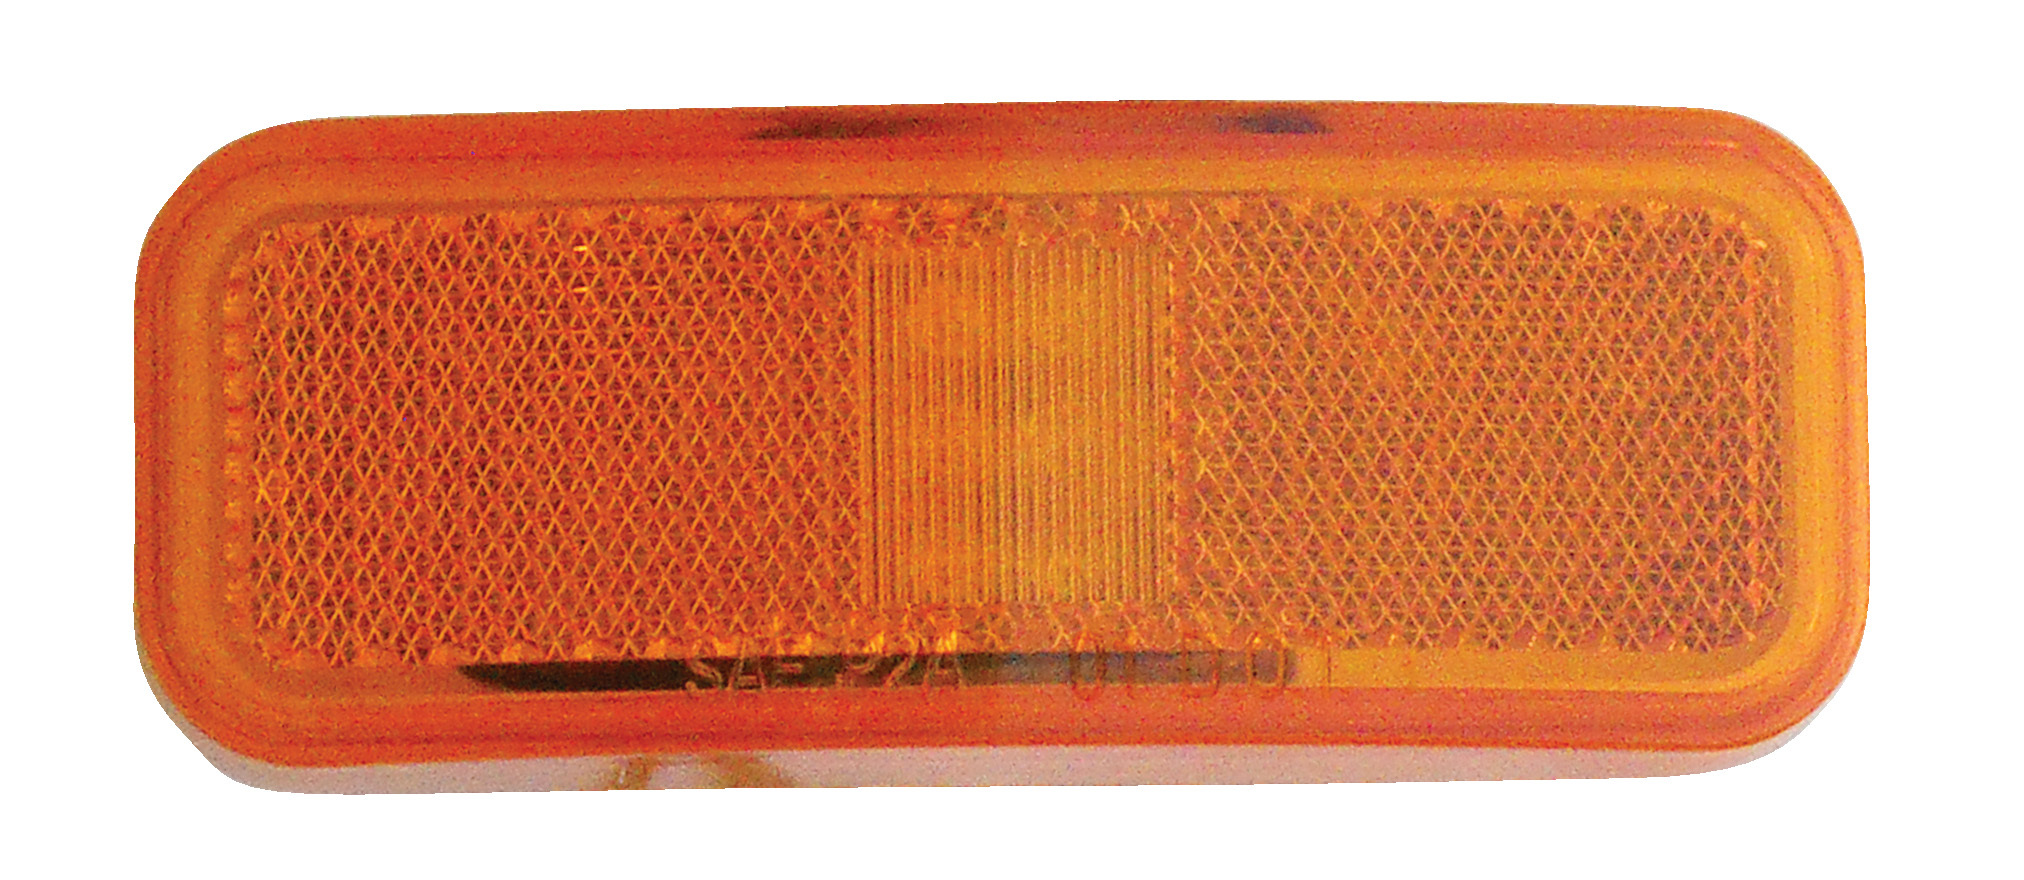 """Weatherproof LED 4"""" x 1.5"""" Marker Light with Reflector - Amber 52718"""